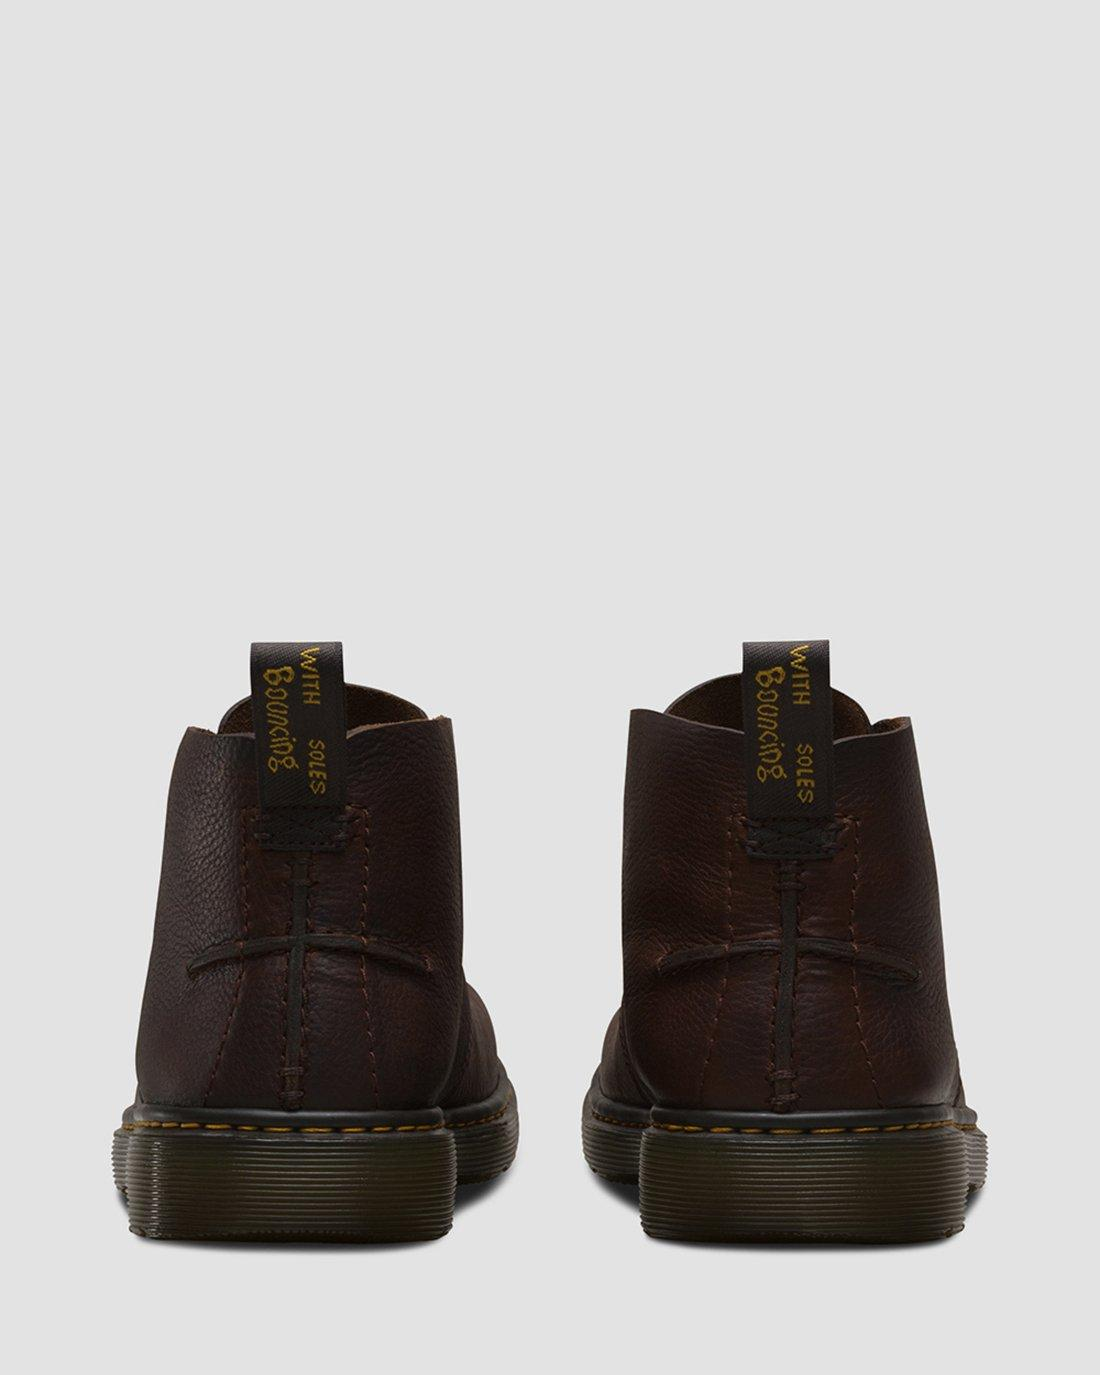 EMBER GRIZZLY | Dr. Martens